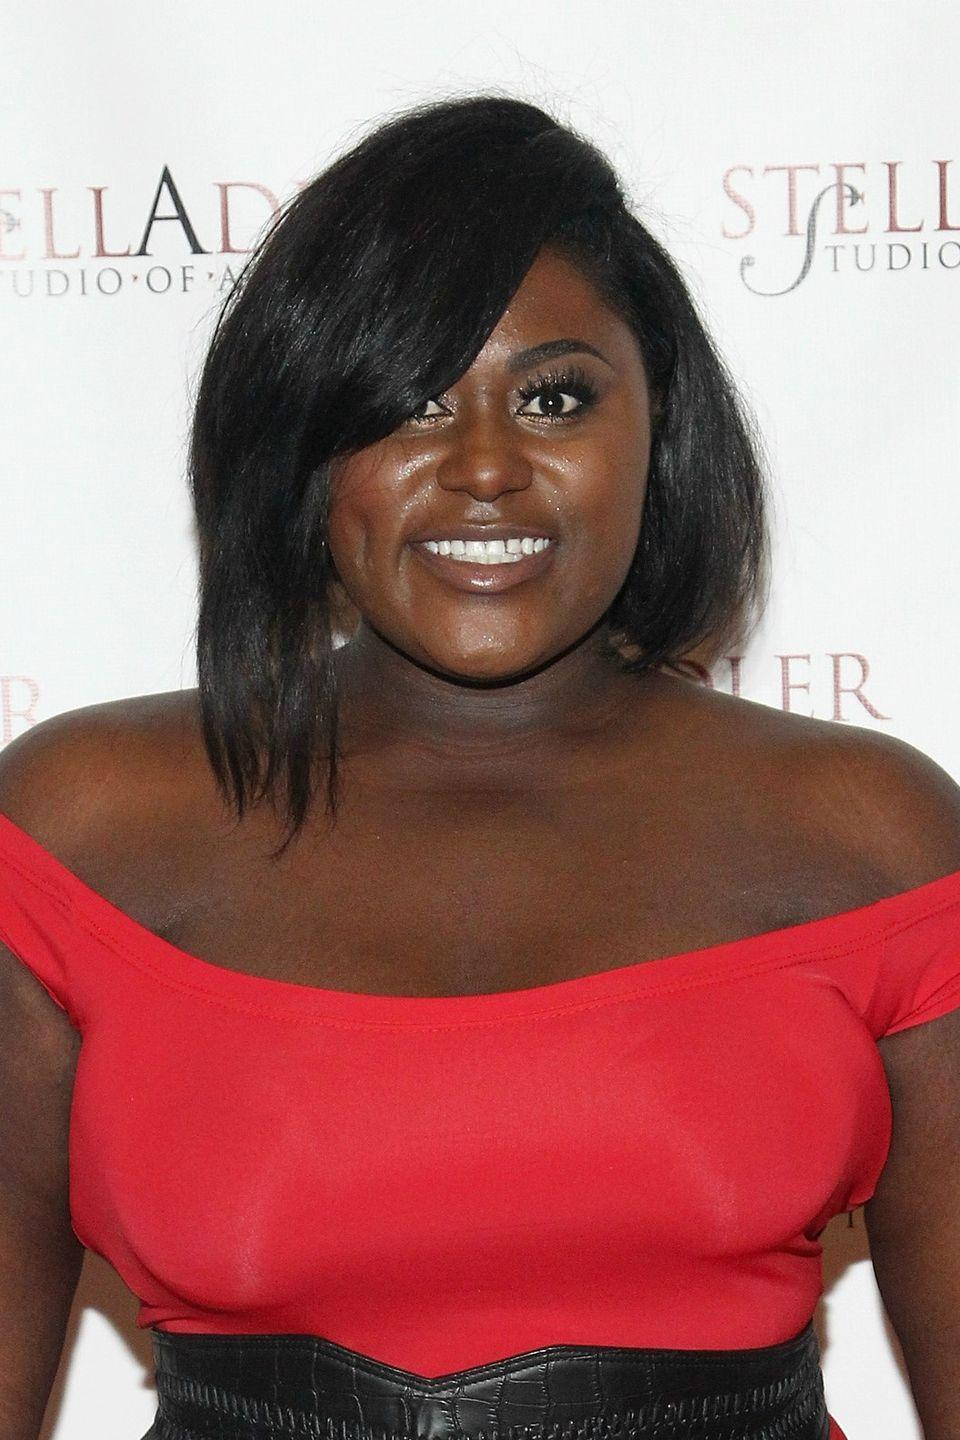 <p>To get this standout polished hairstyle worn by <strong>Danielle Brooks</strong>, ask your stylist to give you an asymmetrical angled bob with swoop bangs.</p>